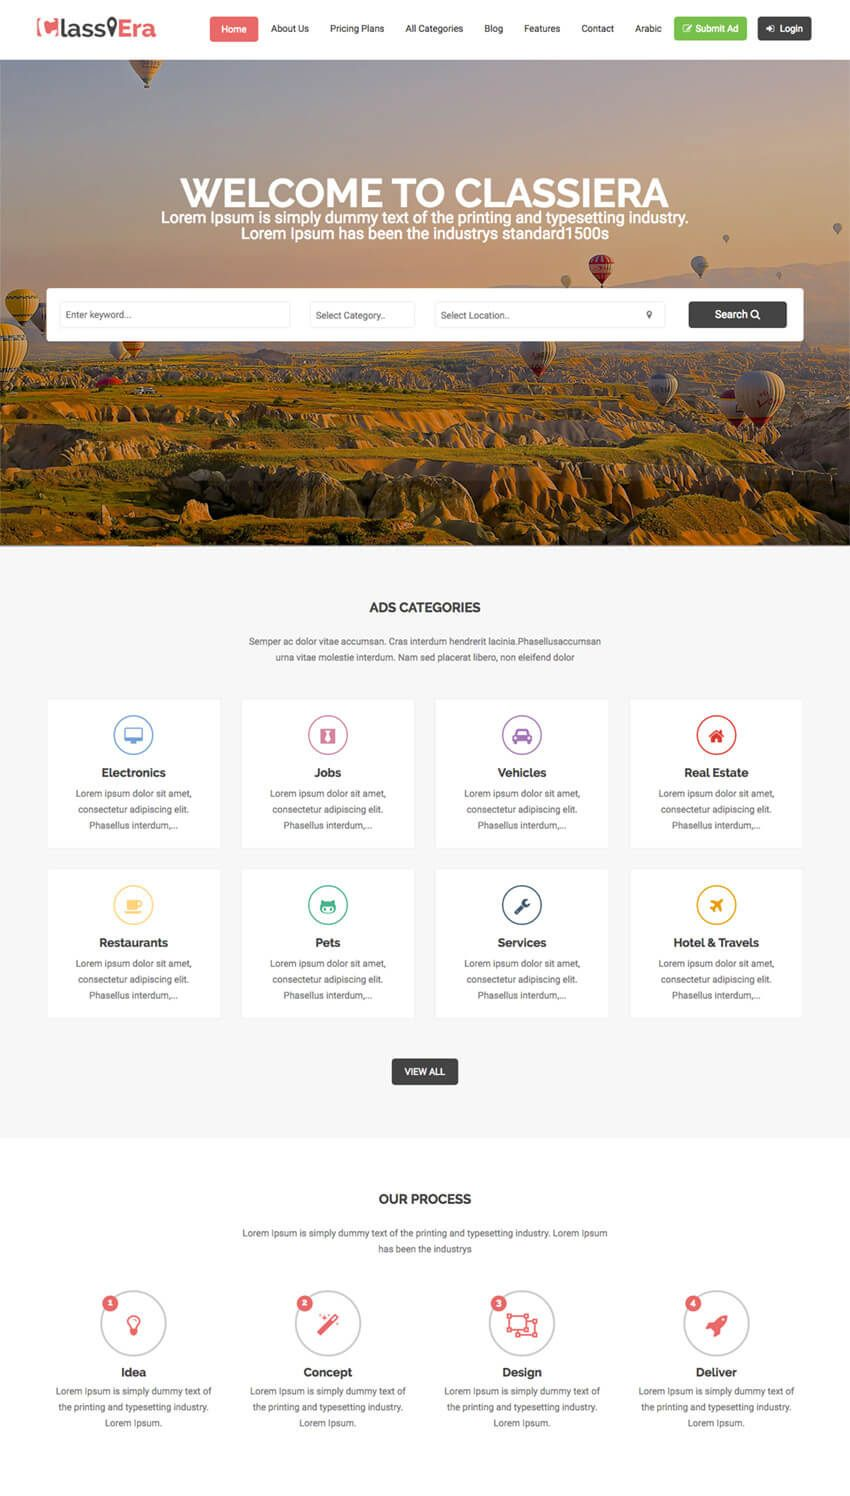 25+ Best WordPress Directory Themes to Make Business